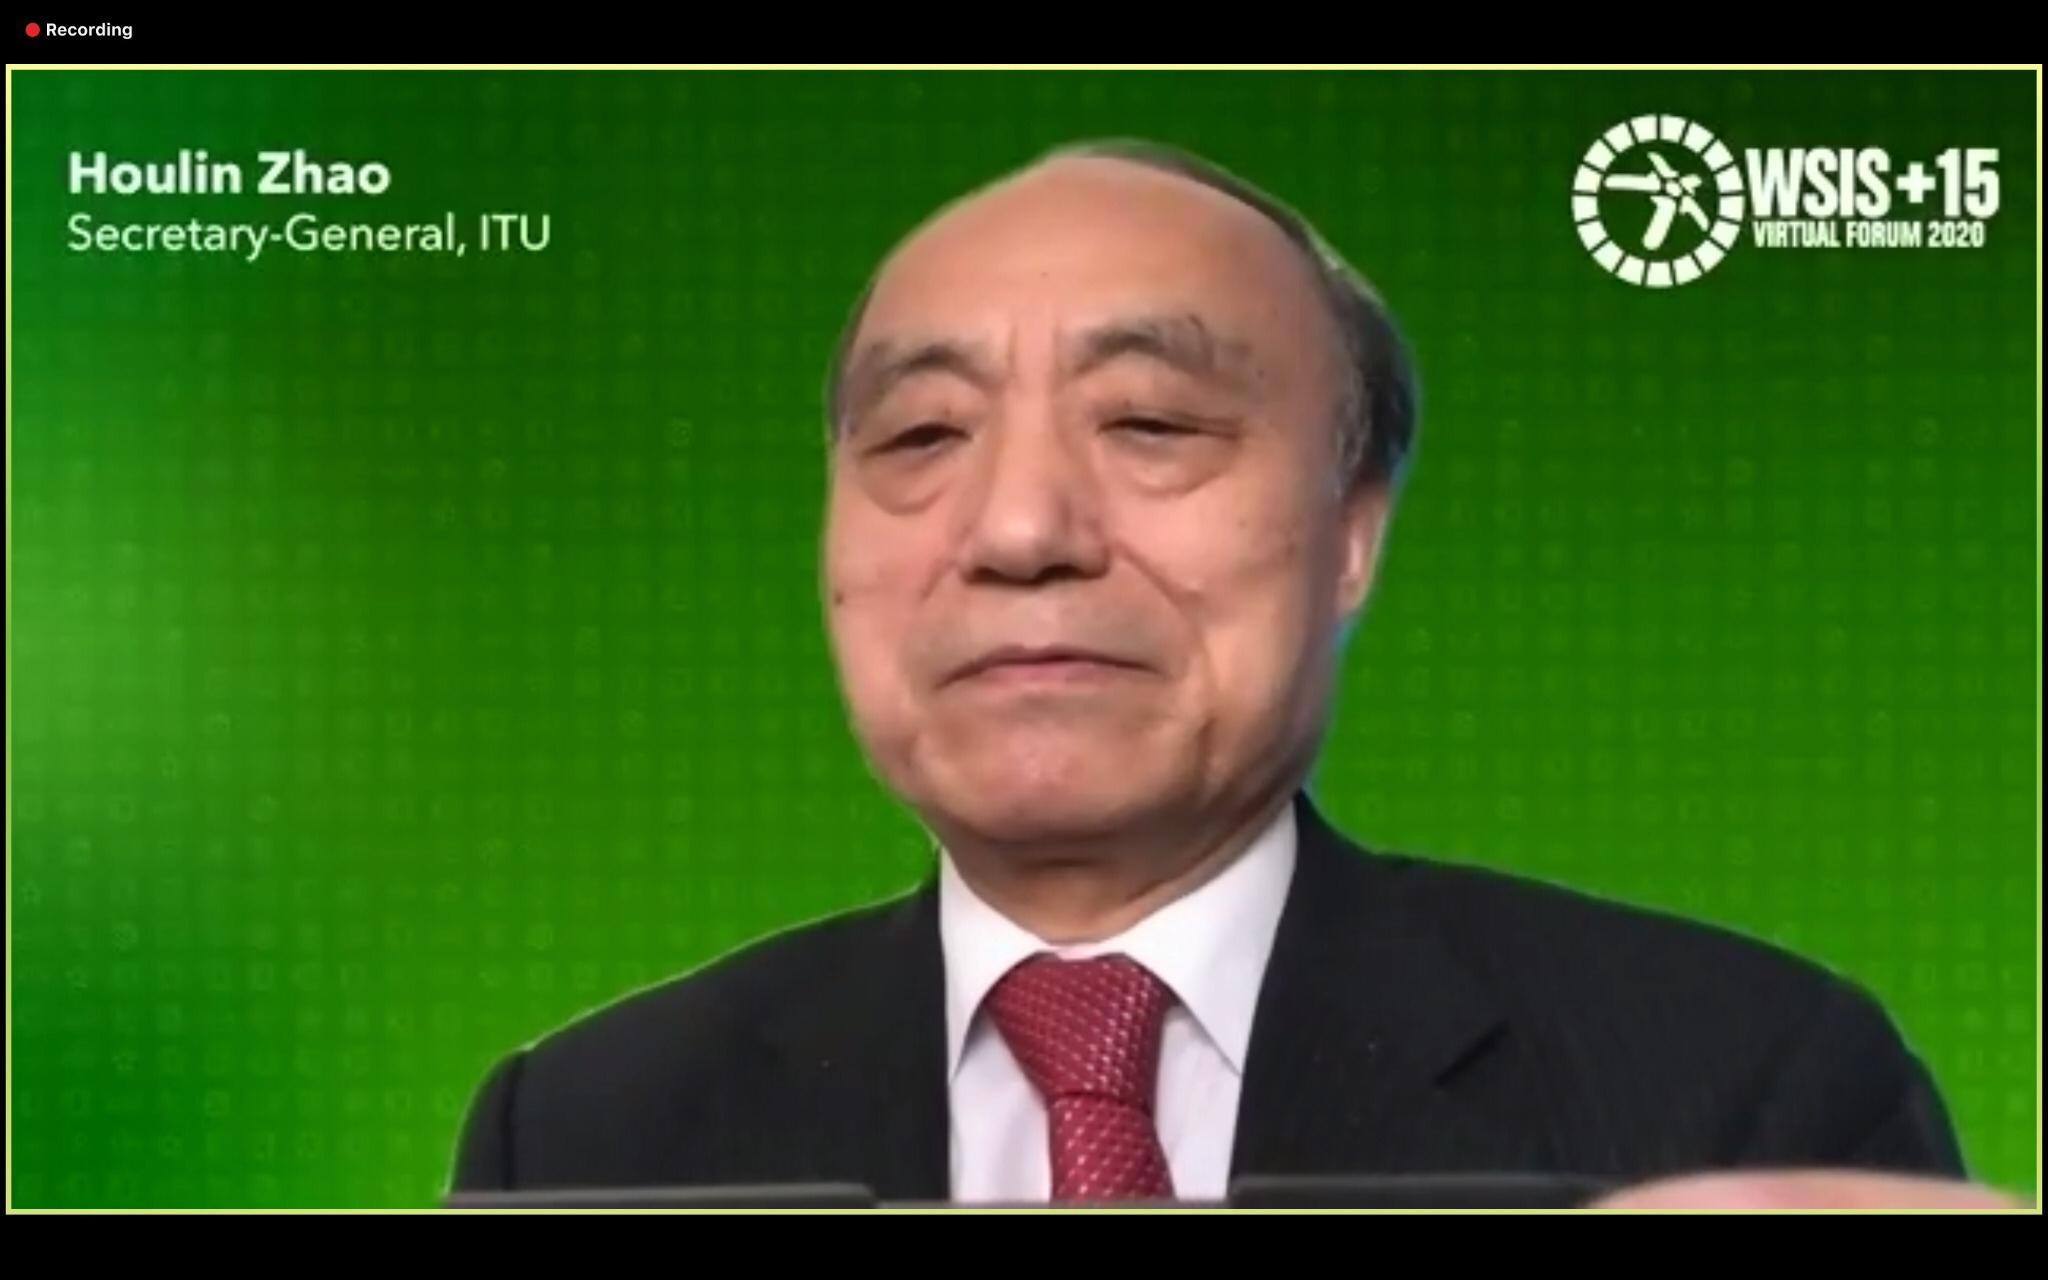 Mr. Houlin Zhao, Secretary-General, ITU at the WSIS Forum 2020 High-Level Opening Ceremony